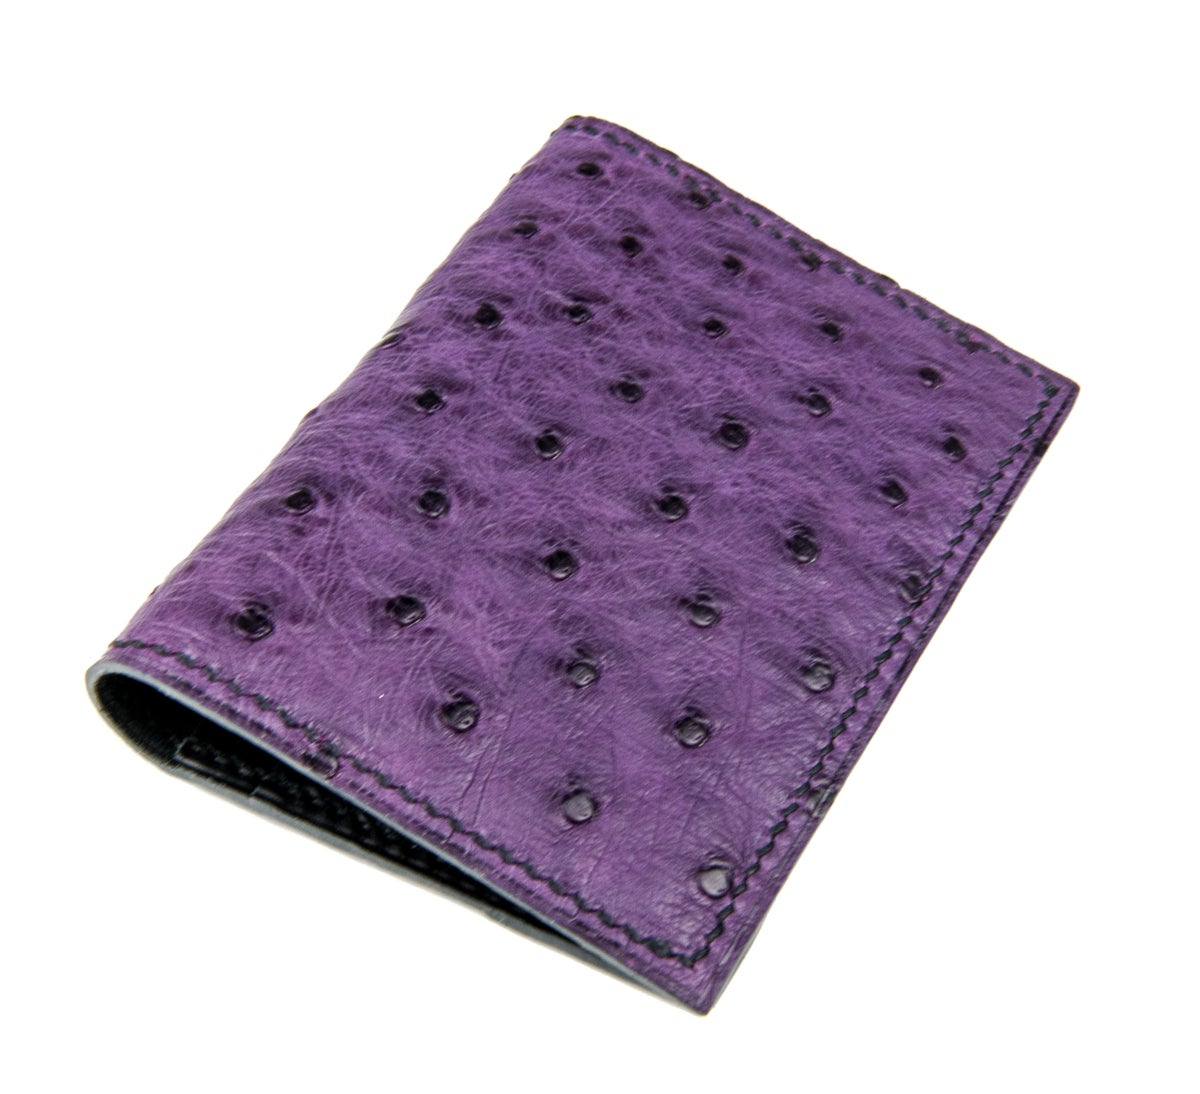 Image of Bifold n°4 - Dark purple Ostrich card-holder